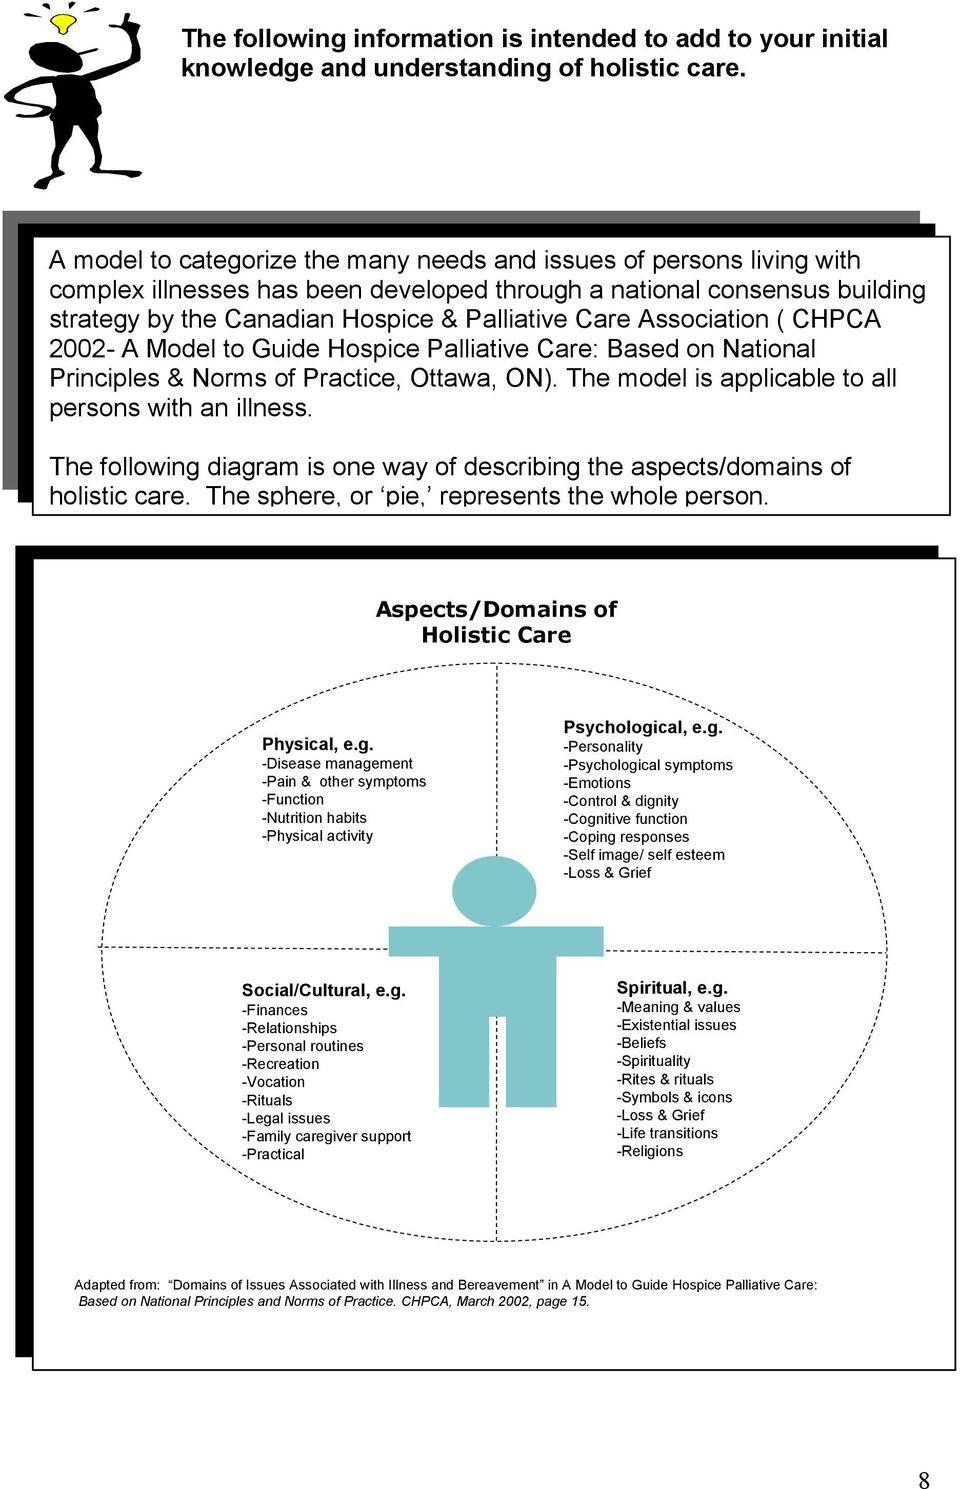 Association ( CHPCA 2002- A Model to Guide Hospice Palliative Care: Based on National Principles & Norms of Practice, Ottawa, ON). The model is applicable to all persons with an illness.